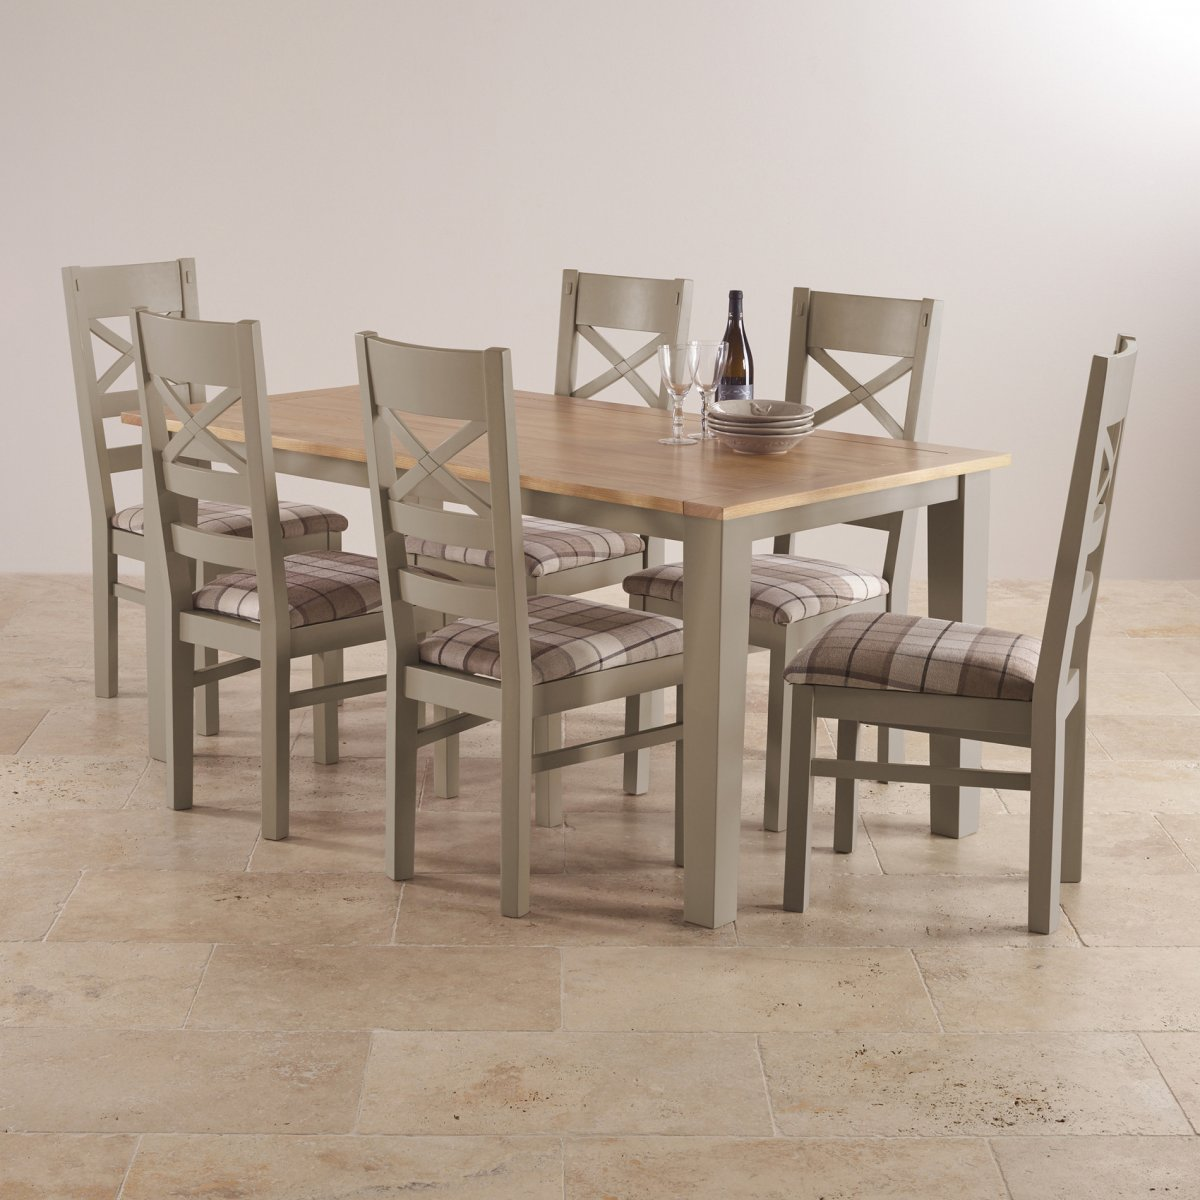 St Ives Dining Set In Grey Painted Acacia: Table + 6 Chairs